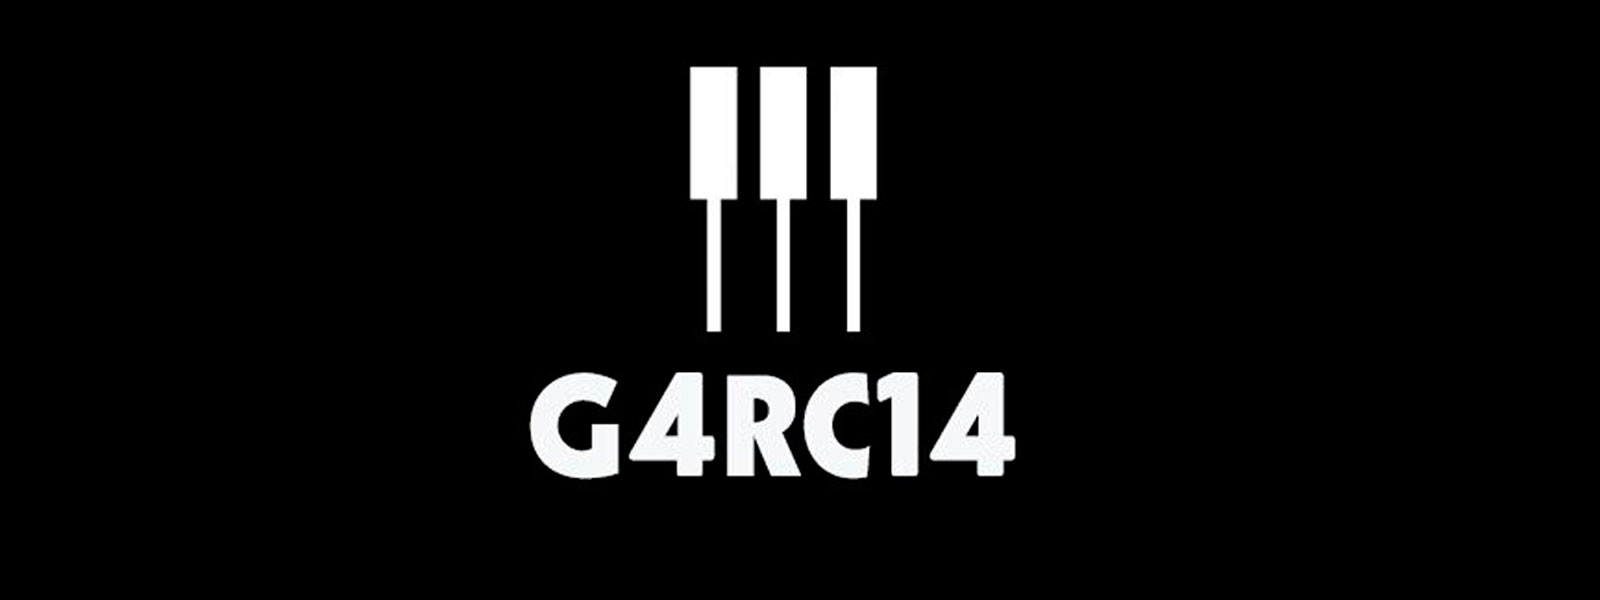 G4RC14 Channel Cover